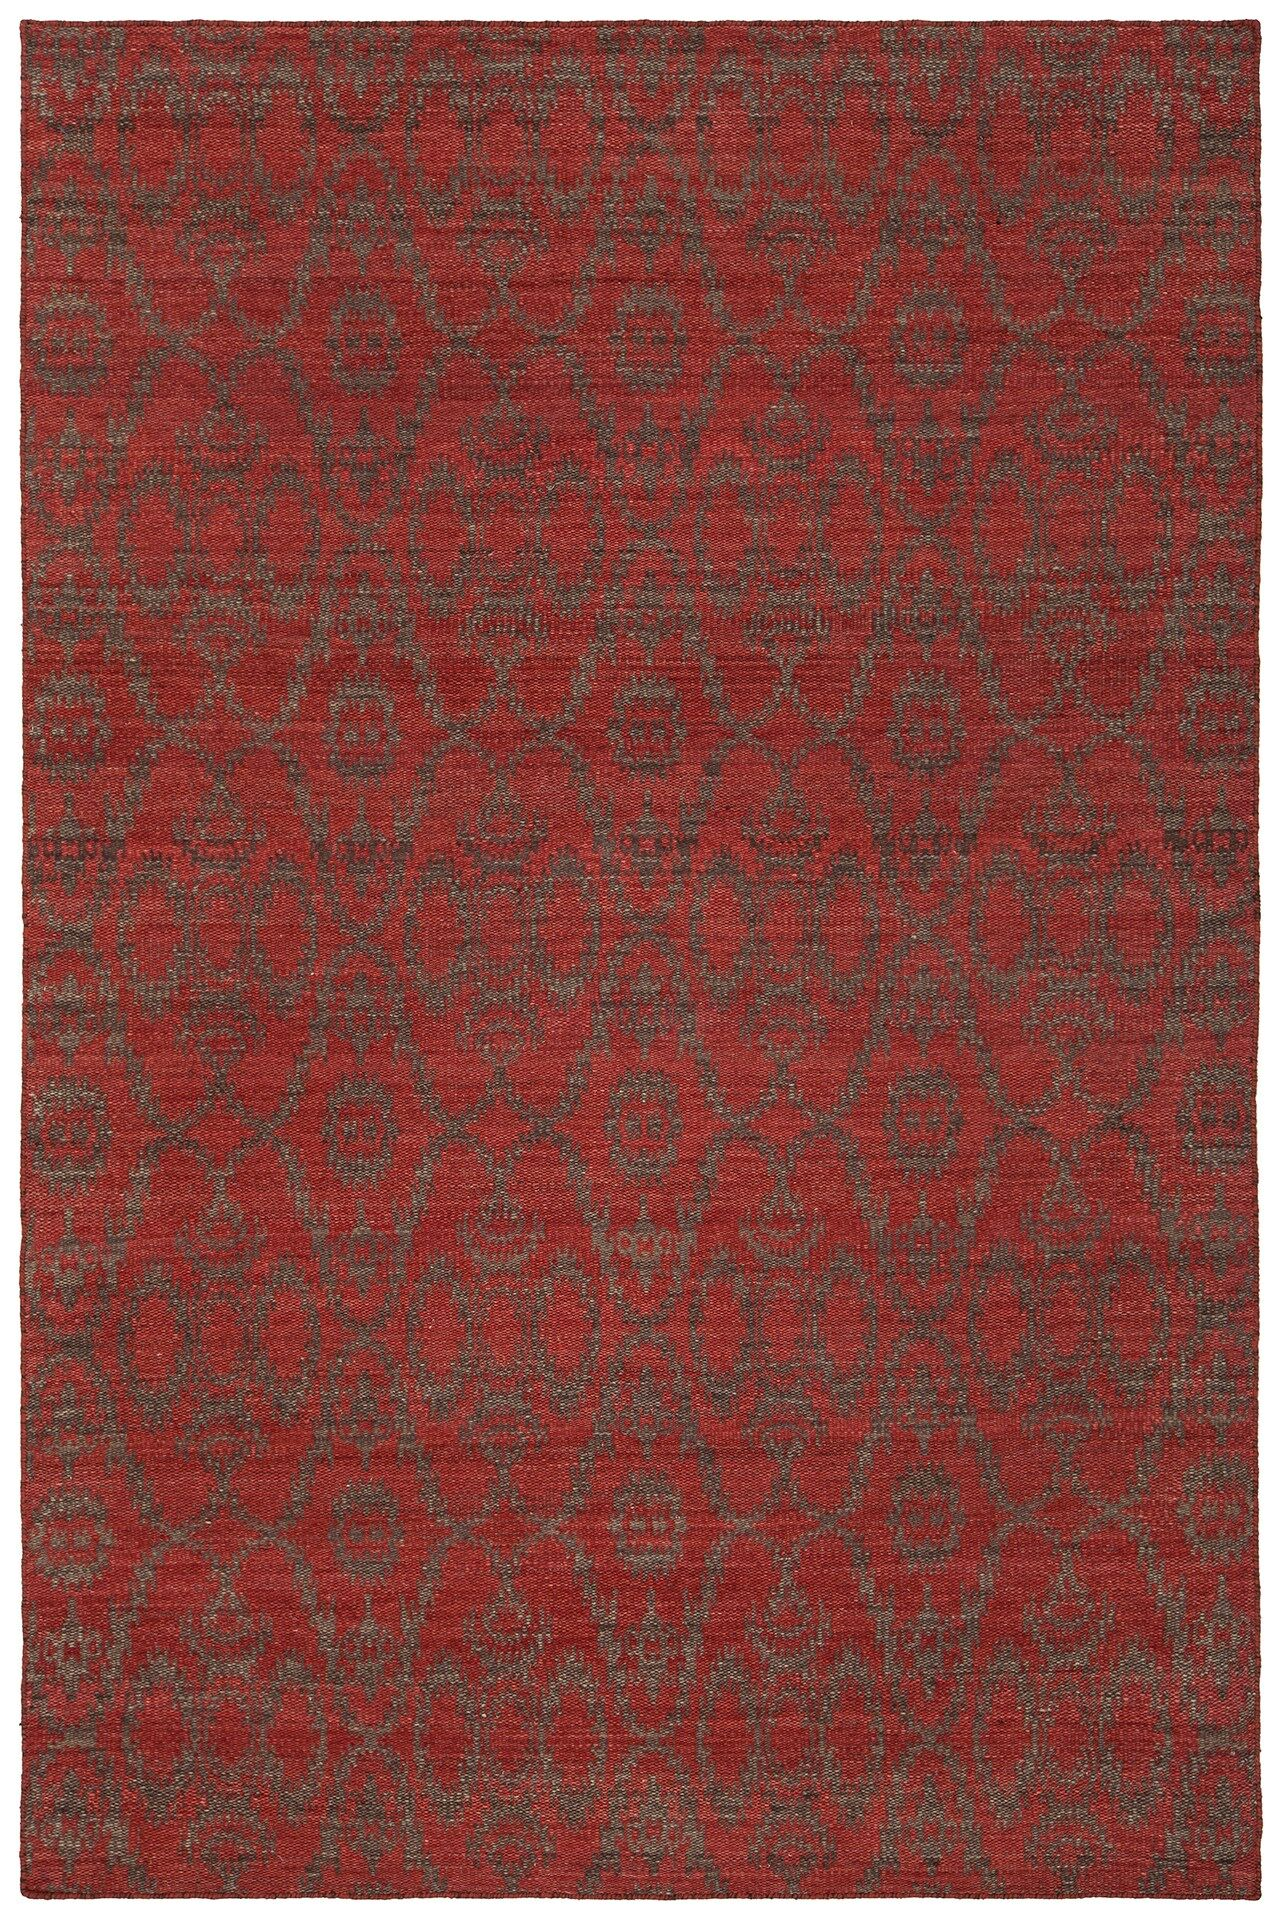 Daria Hand-Woven Wool Red Area Rug Rug Size: Rectangle 5' x 7'6